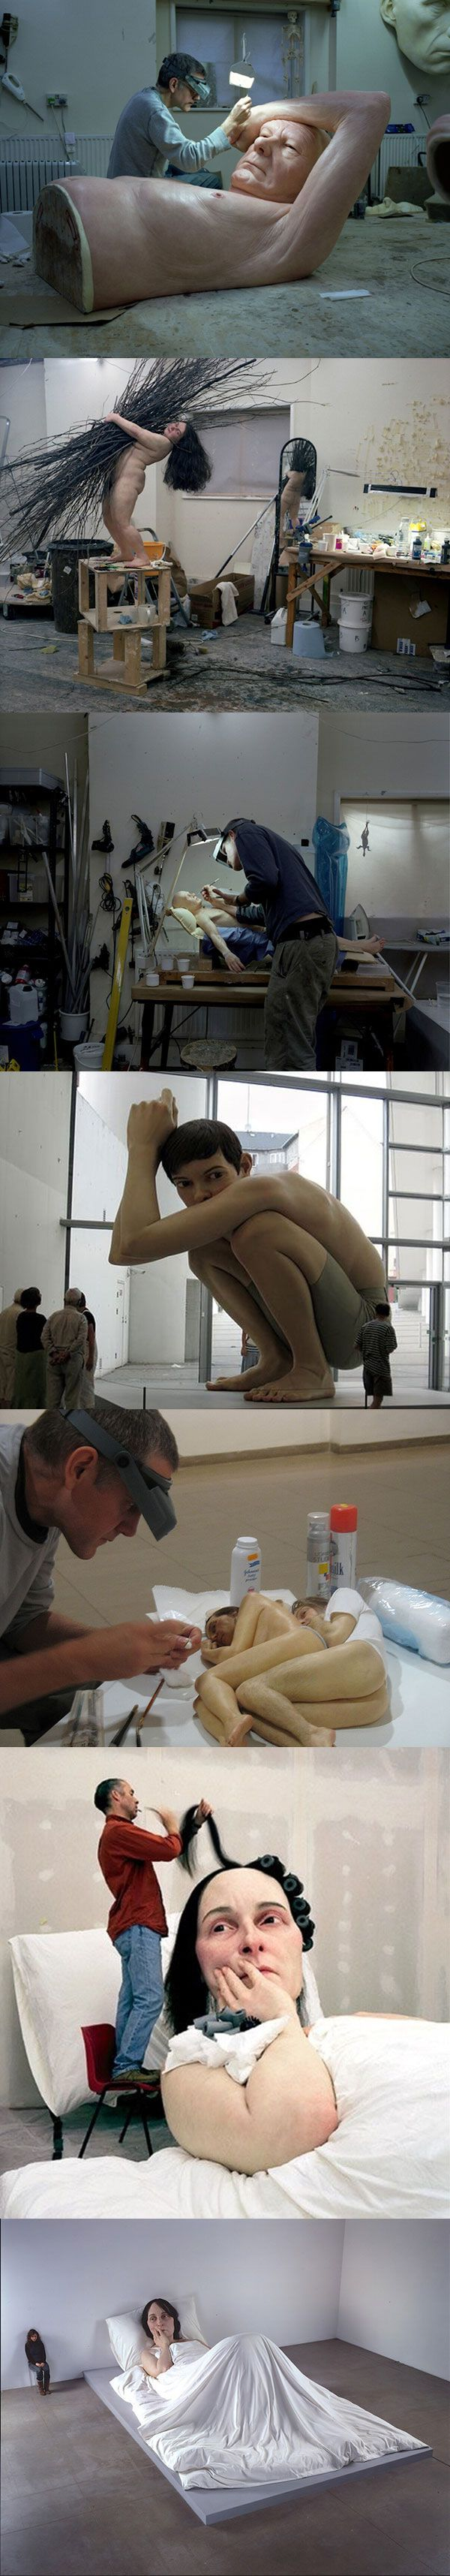 #Artist Ron Mueck, Playing with scale of the human form. Elicits fear & wonder in me. Would love to experience them in person.